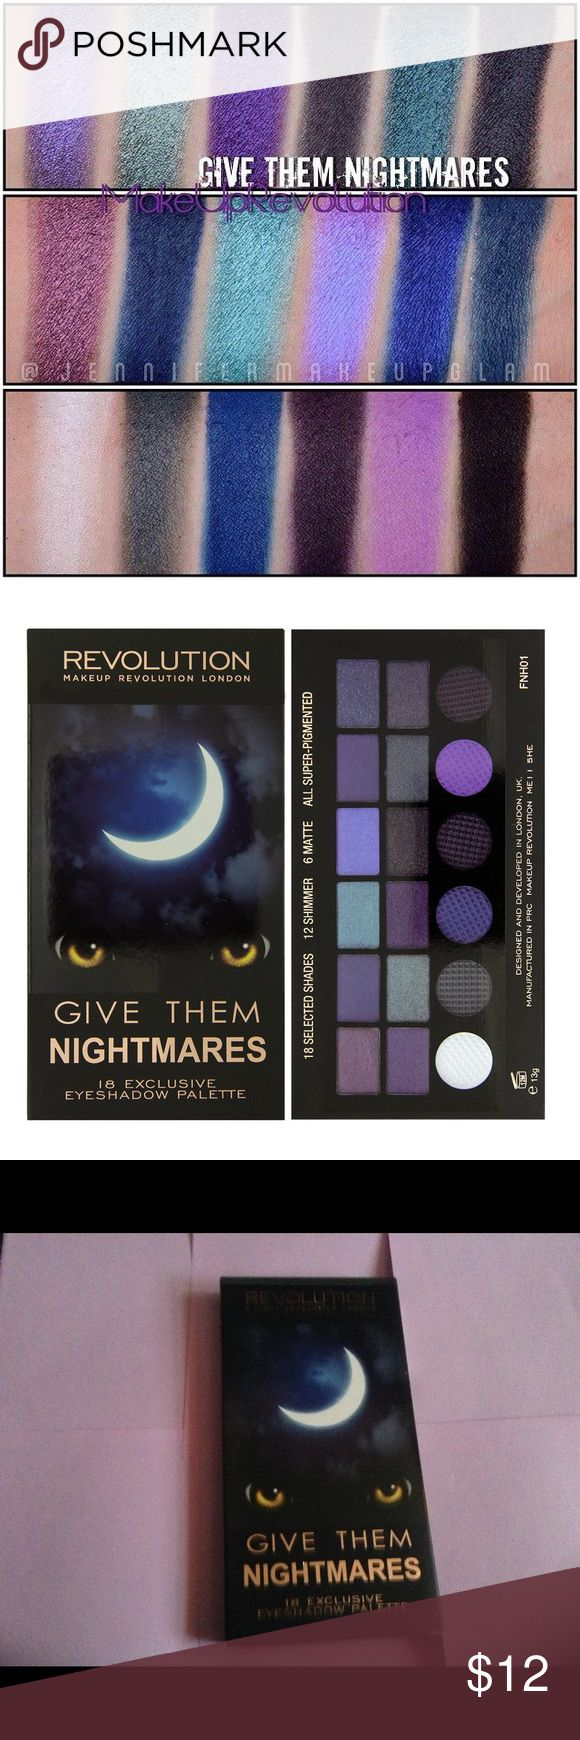 nightmares palette only 1 left perfect for the glamorous goth such gorgeous gorgeous colors makeup revolution give them nightmares palette  BNIB free darth vader hair bow, .2 cross rings and  darth vader brooch  SAVE HARDCORE BY BUNDLING! check out the rest of my page  urban decay nars too faced kylie sephora ulta strobe highlight contour palette victorias secret pink nyx Anastasia unicorn mermaid rainbow shimmer moon child makeup nightmare before xmas jack goth gothic rocker punk makeup…